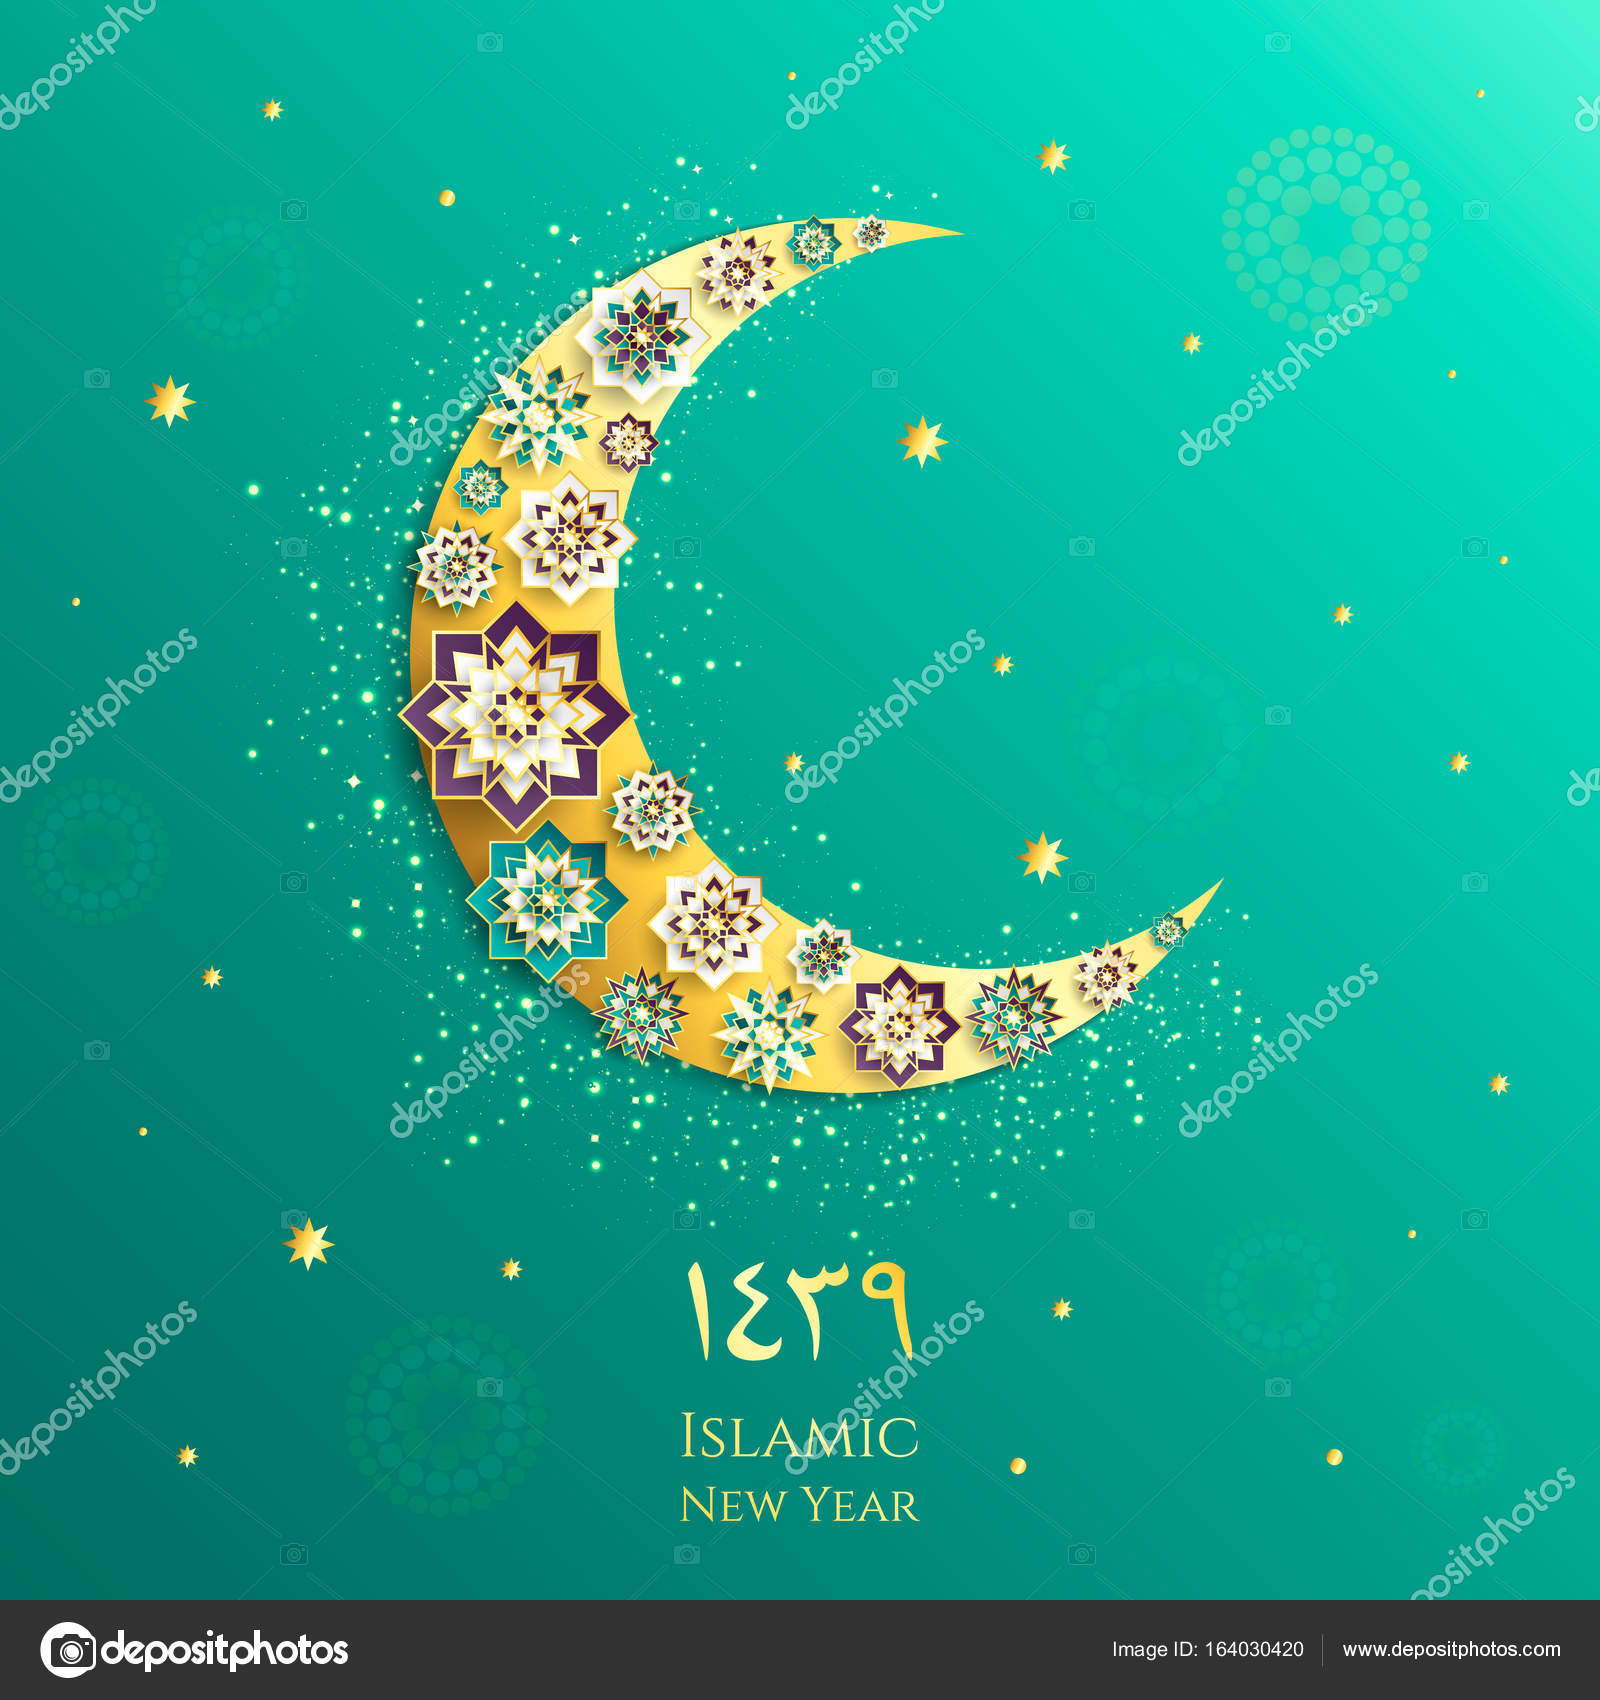 1439 hijri islamic new year happy muharram muslim community festival eid al ul adha mubarak greeting card with 3d paper flower star moon